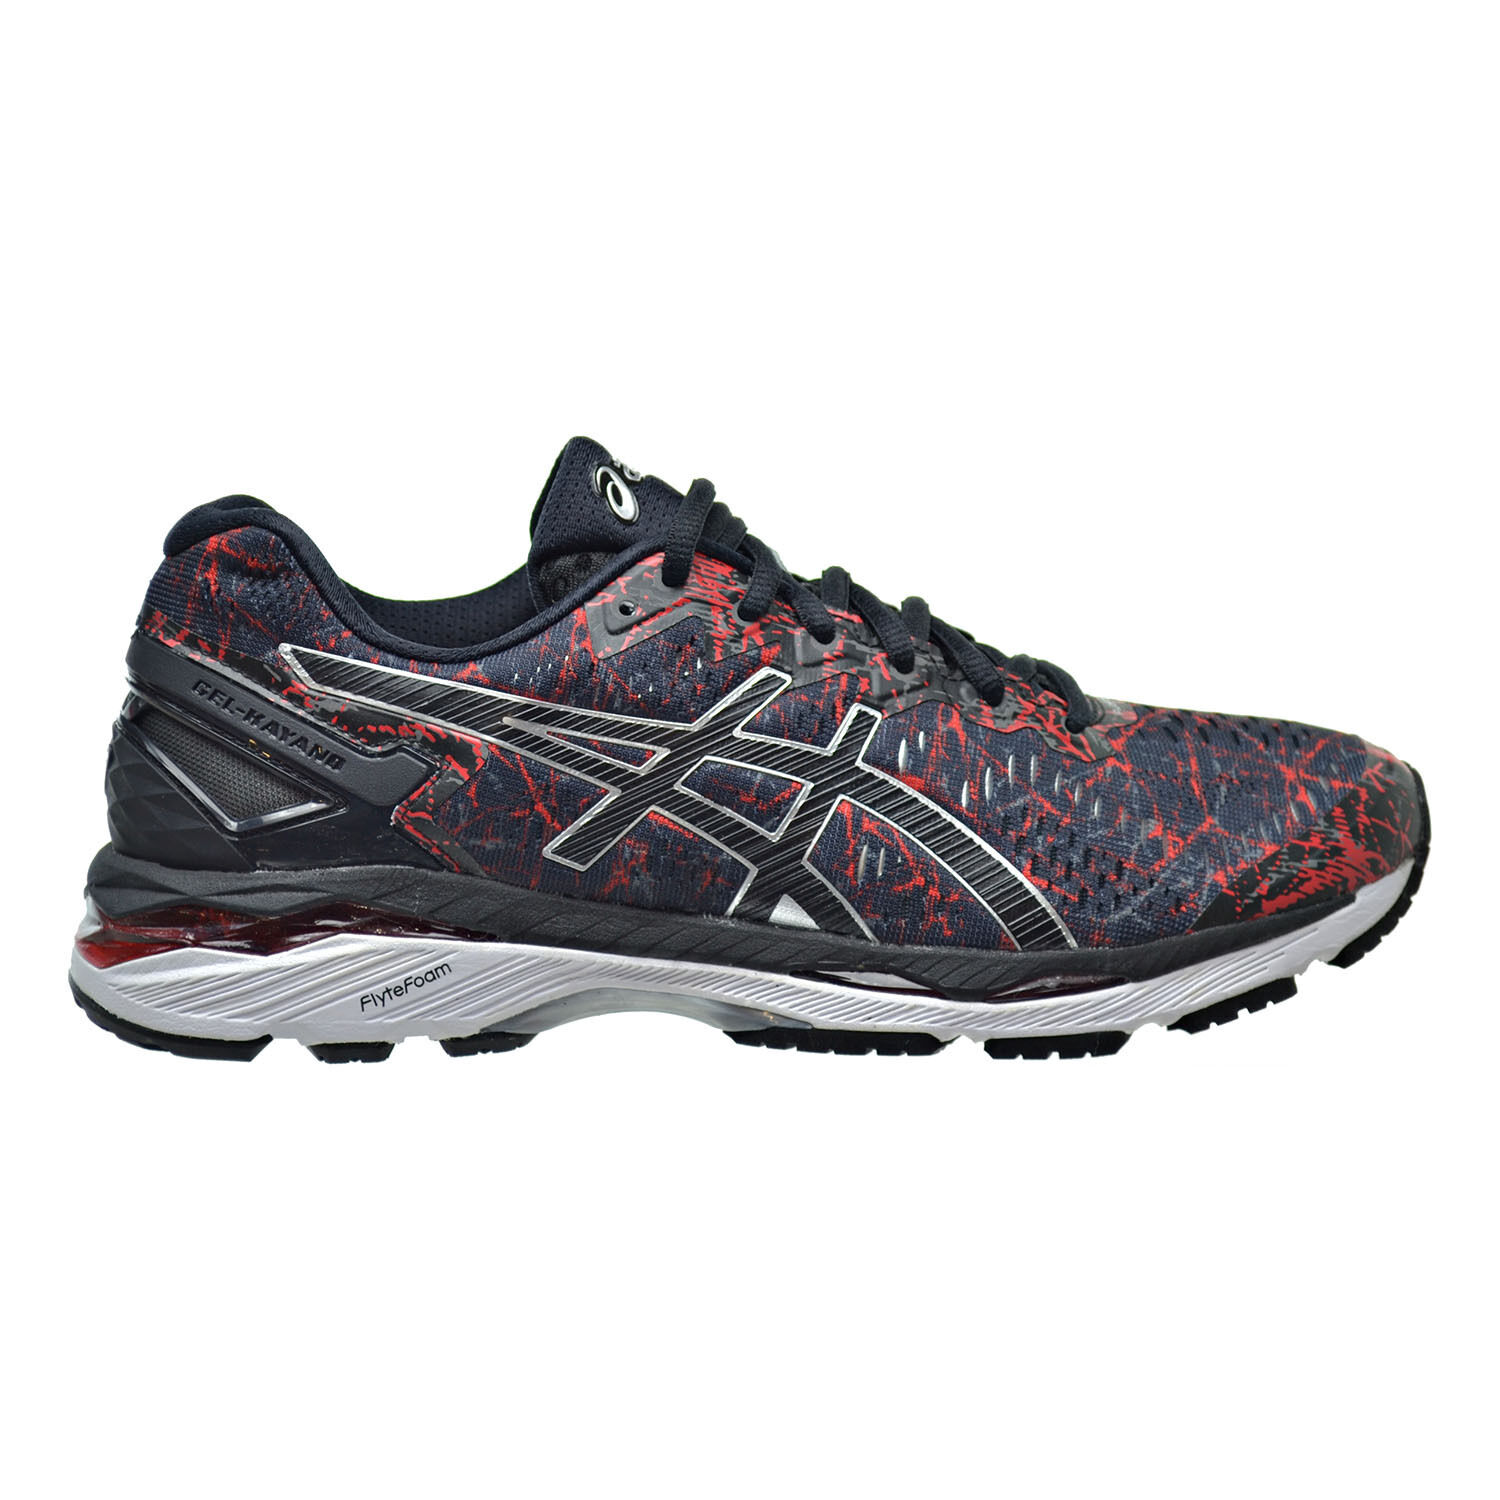 Asics Gel Kayano 23 Mens Shoes Vermilion/Black/Silver t6a0n-2390